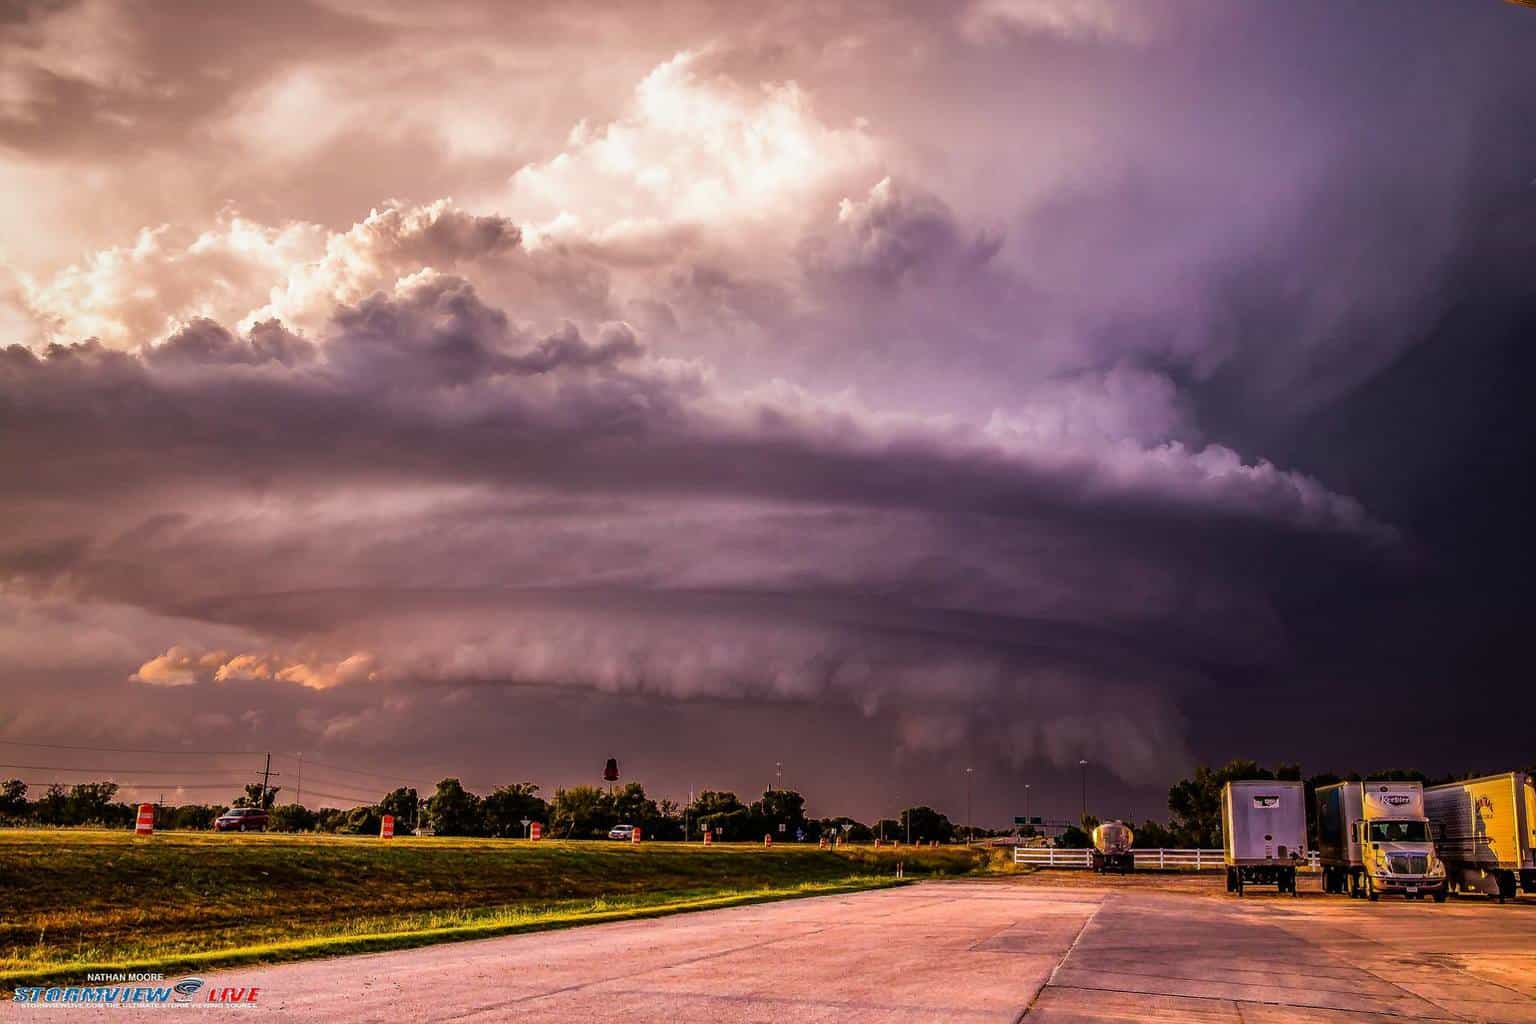 As promised from yesterday's photo this is from near the Grand Island, NE in September 9th earlier this year but right before I went in for the shot you saw yesterday